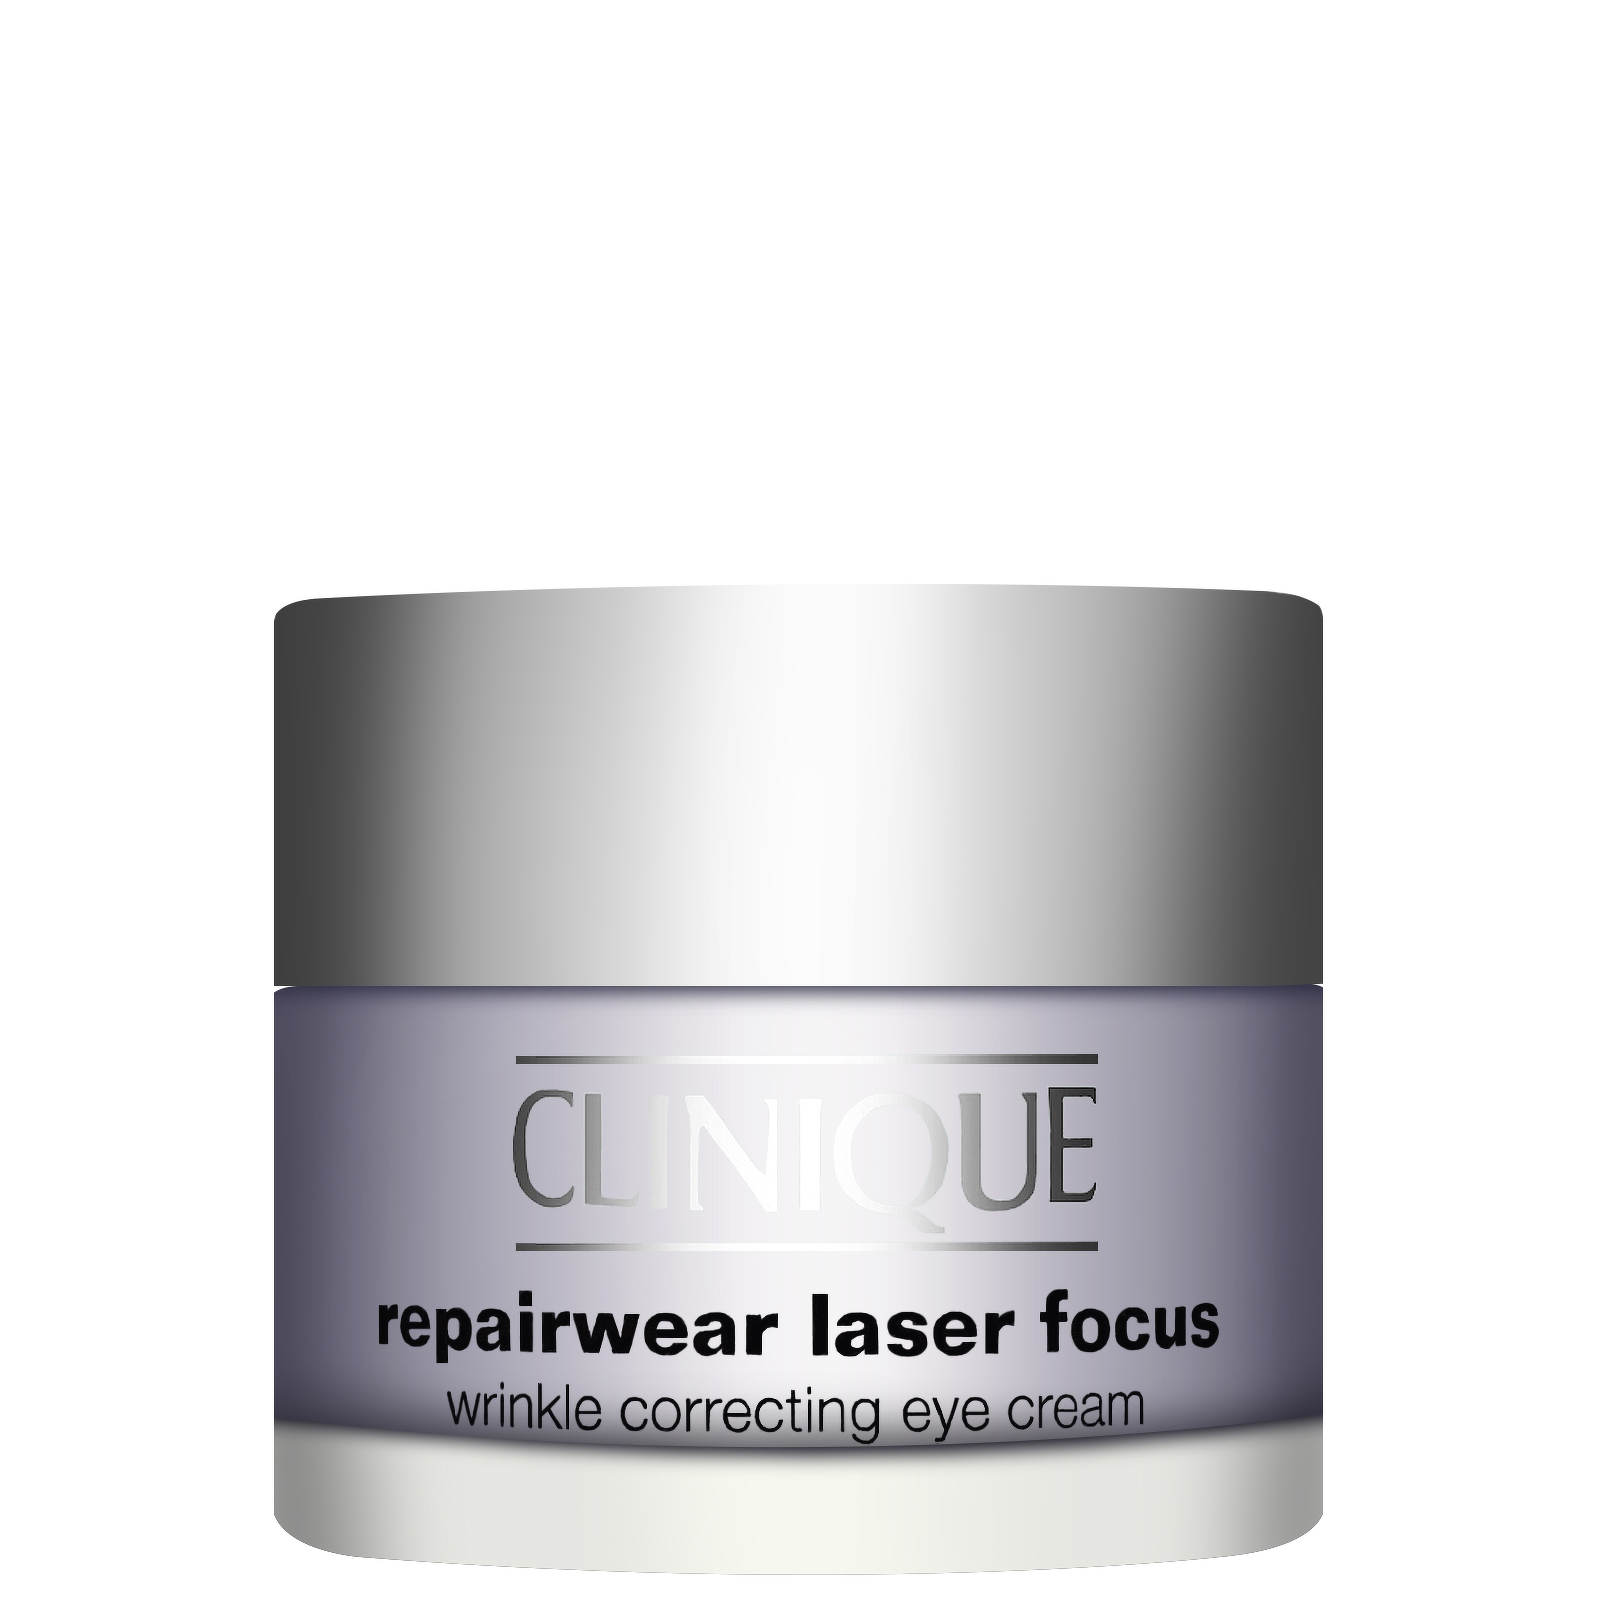 Clinique Eye & Lip Care Repairwear Laser Focus Wrinkle Correcting Eye Cream 15ml / 0.5 fl.oz.